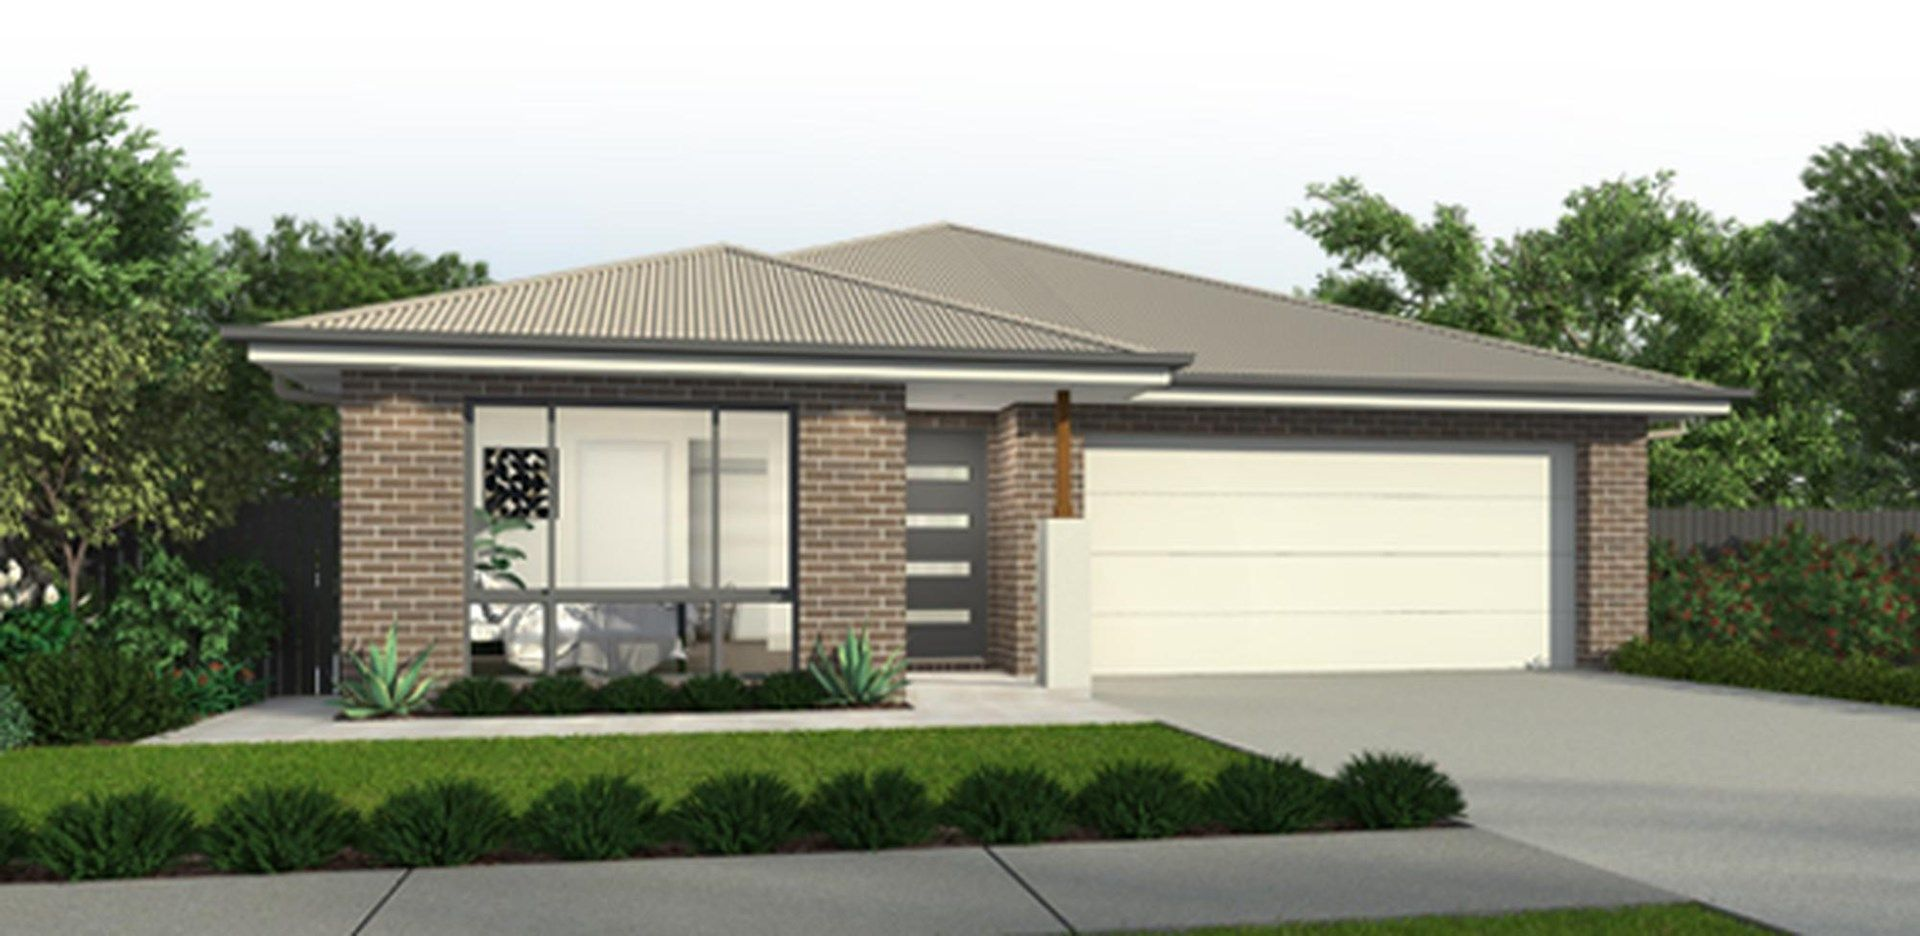 1205 Ridgeview Street, Cliftleigh NSW 2321, Image 0